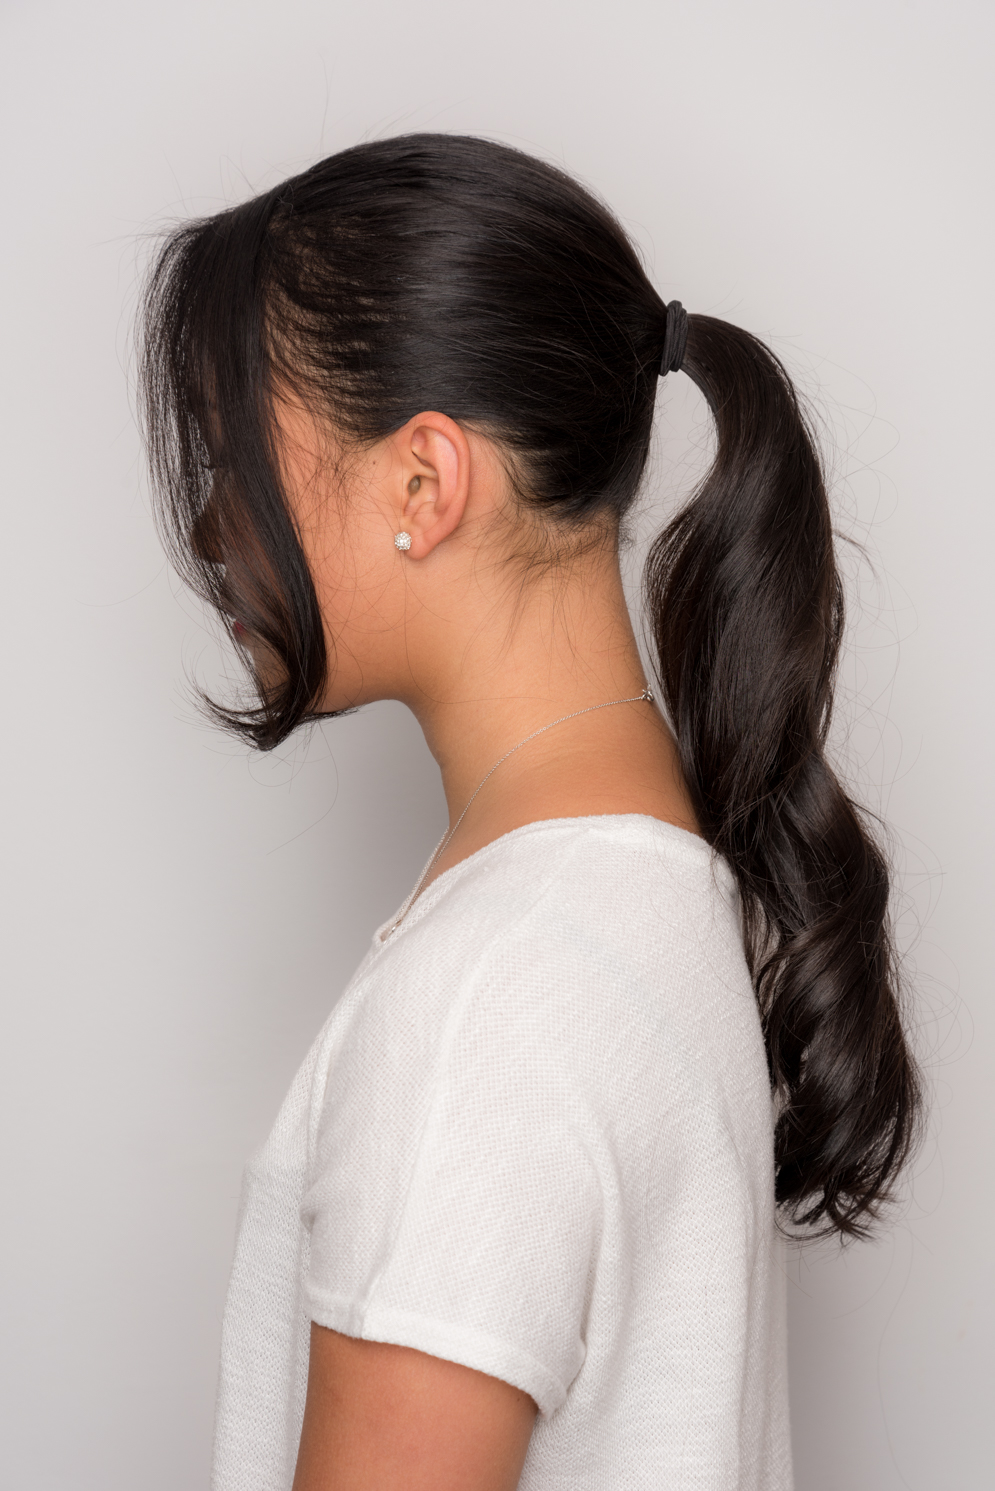 ROCK MAMA NYC LIFESTYLE BLOG - HOW TO MAKE EASY AND STYLISH PONY TAIL